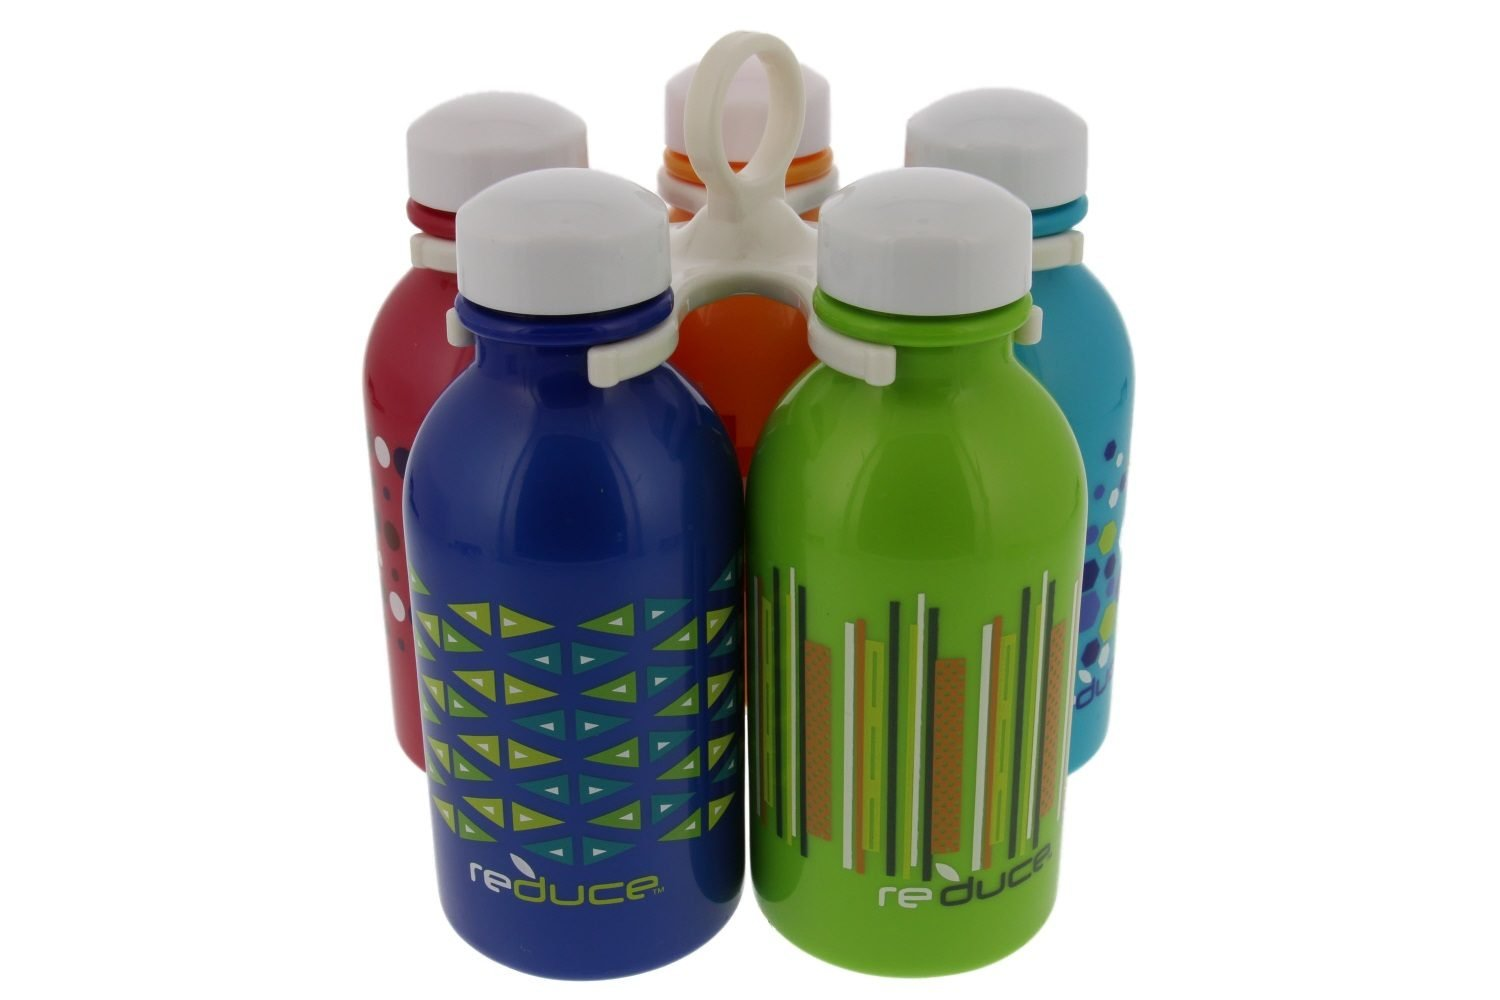 reduce WaterWeek Kids Reusable Water Bottle Set with Carry Carousel – 5 Pack, 10oz – BPA-Free, Leak Proof Twist Off Cap – Assorted Colors - Perfect for Lunchboxes